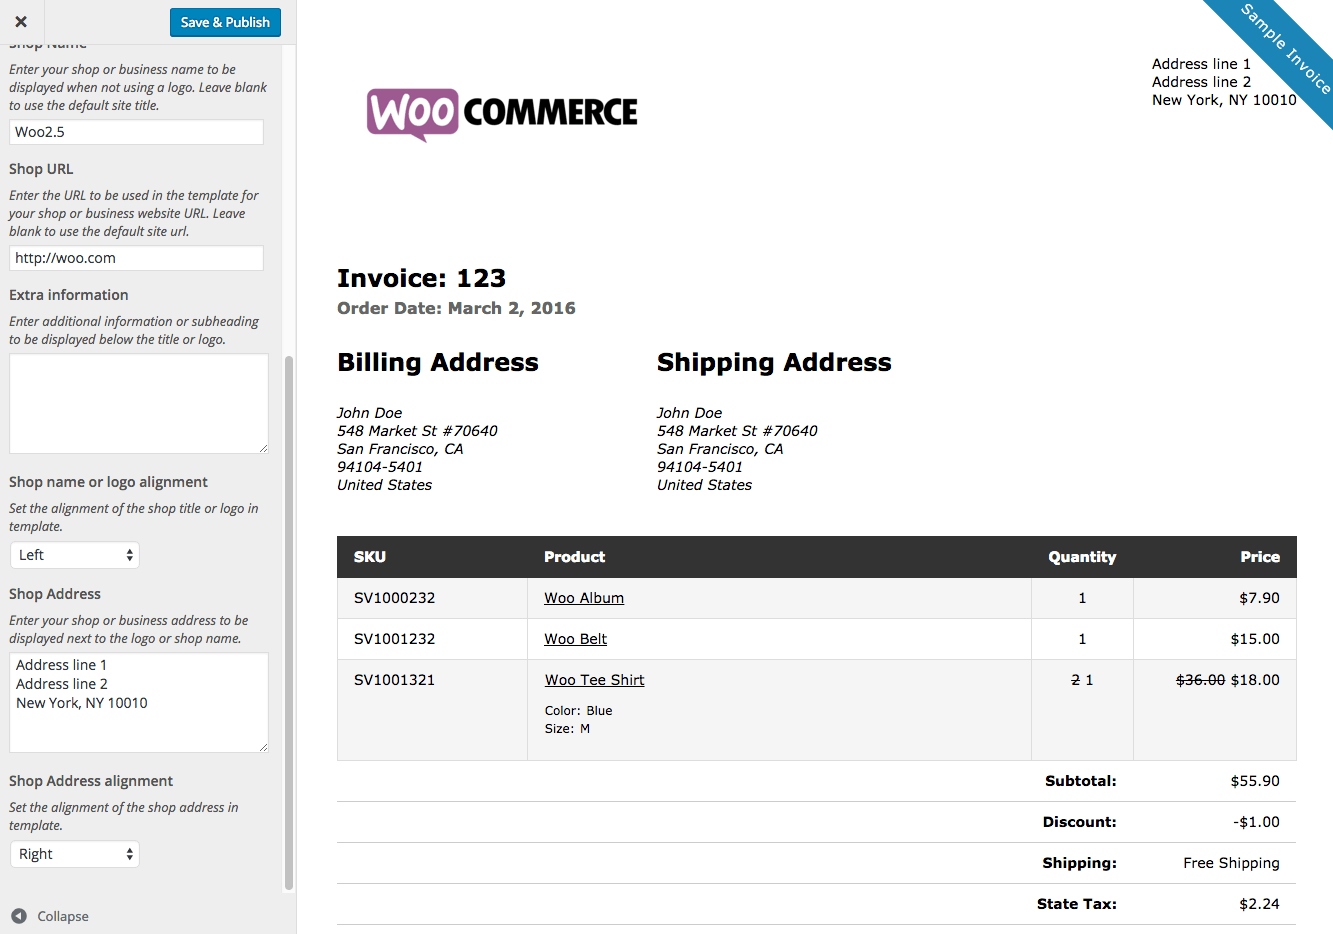 Totallocalus  Stunning Woocommerce Print Invoices Amp Packing Lists  Woocommerce Docs With Marvelous Woocommerce Print Invoices  Packing Lists Customizer With Divine Work Invoice Template Pdf Also Vat Number On Invoice In Addition Tally Invoice And Invoice Samples Free As Well As Invoice Customers Additionally Digital Invoicing From Docswoocommercecom With Totallocalus  Marvelous Woocommerce Print Invoices Amp Packing Lists  Woocommerce Docs With Divine Woocommerce Print Invoices  Packing Lists Customizer And Stunning Work Invoice Template Pdf Also Vat Number On Invoice In Addition Tally Invoice From Docswoocommercecom